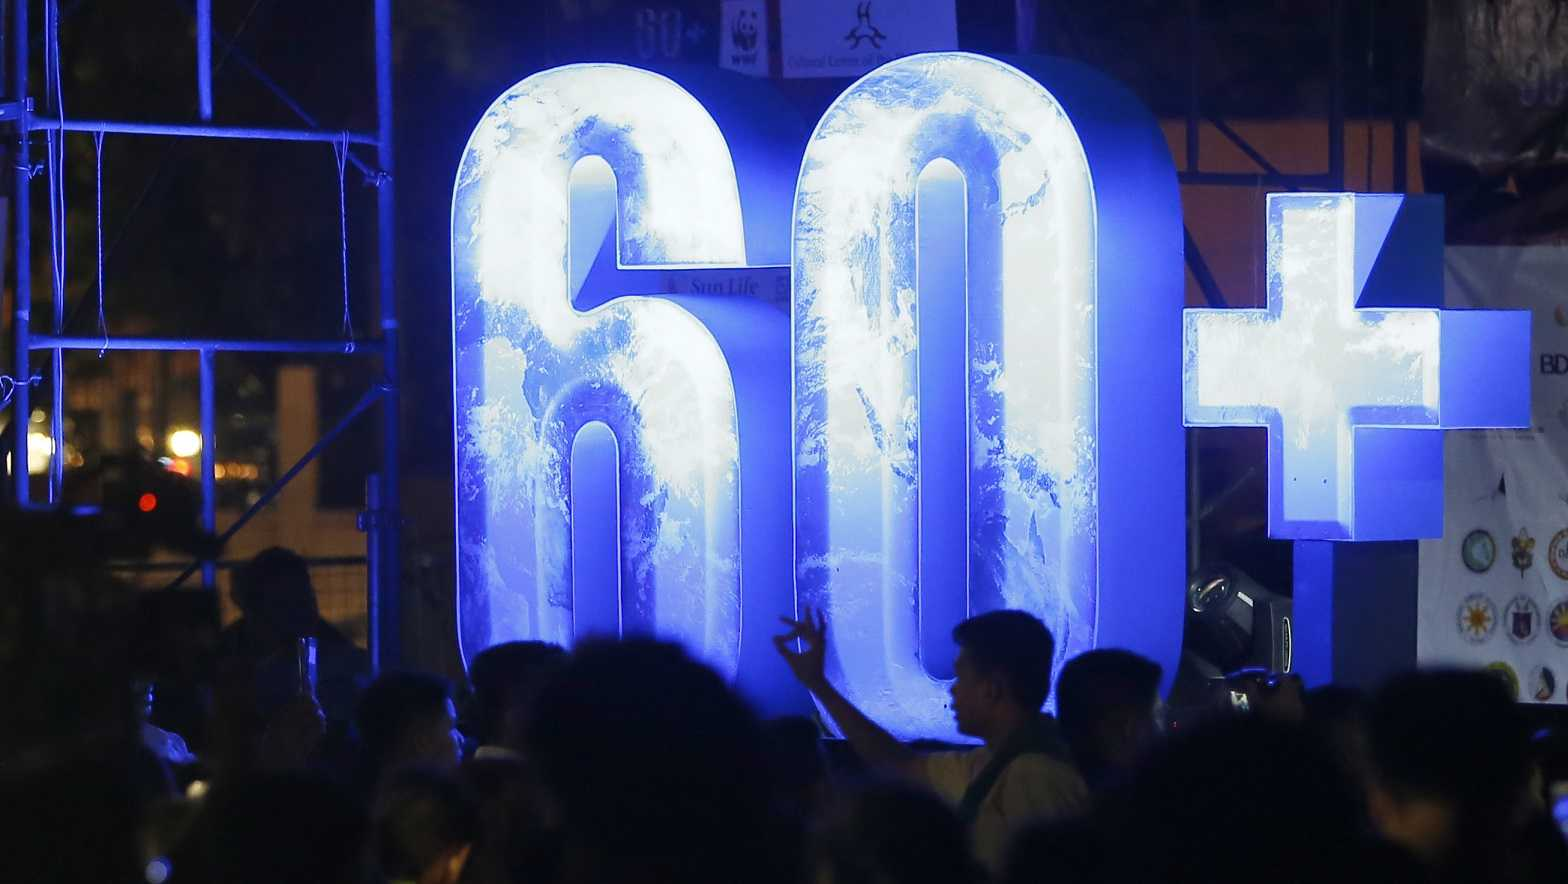 Filipinos gather at the Cultural Center of the Philippines to take part in an Earth Hour activity, a global even that raises awareness on the need to take action on climate change Saturday, March 24, 2018 in suburban Pasay city southeast of Manila, Philippines.